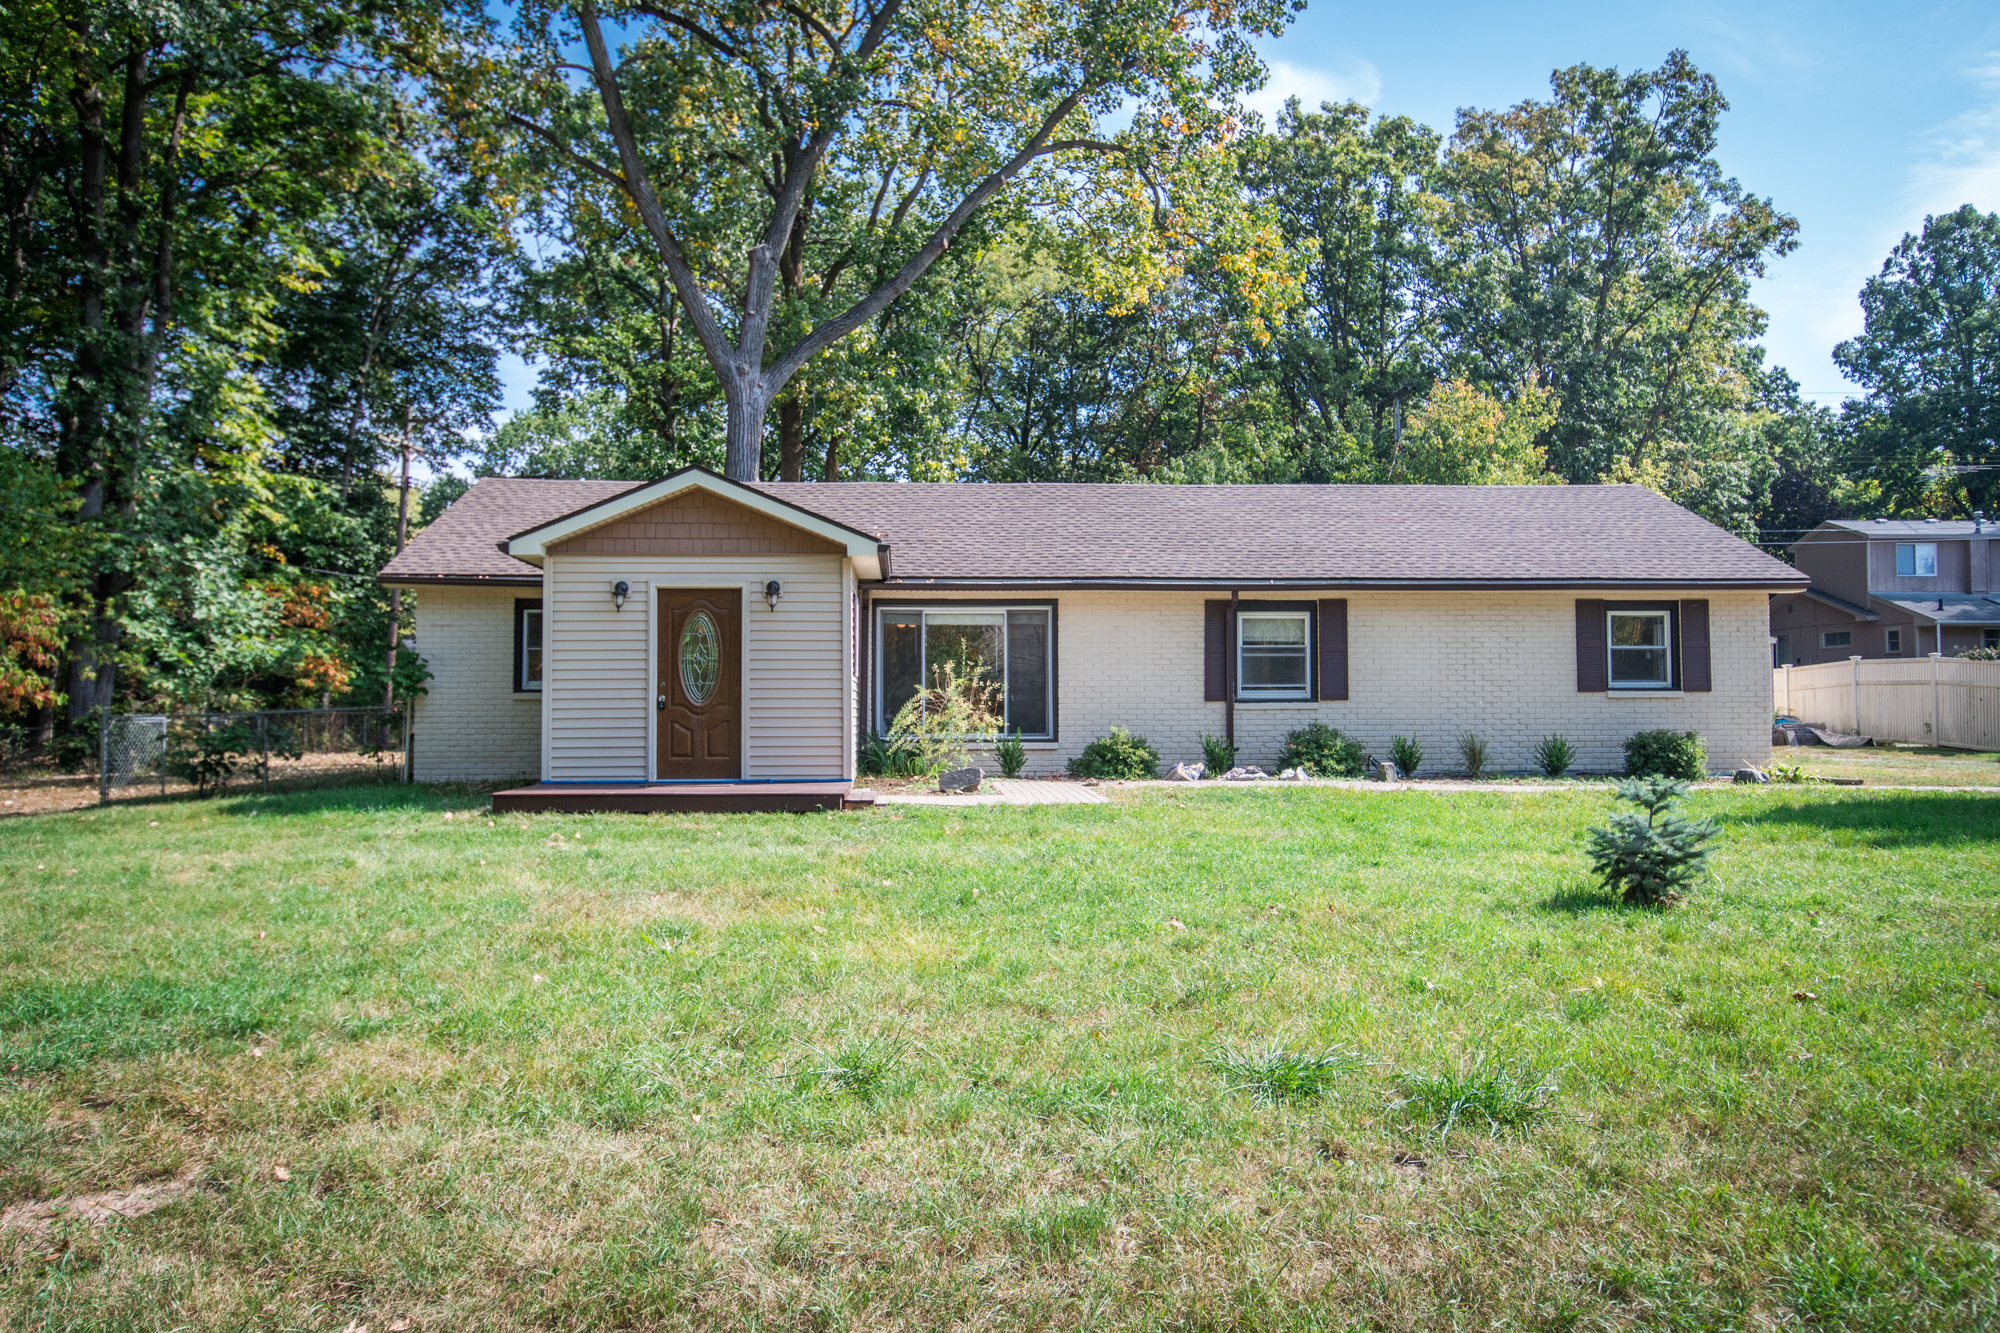 N. Crest Lane- South Lyon - $233,000   DOM 76 / Sold for 99% of asking price / 29 Showings